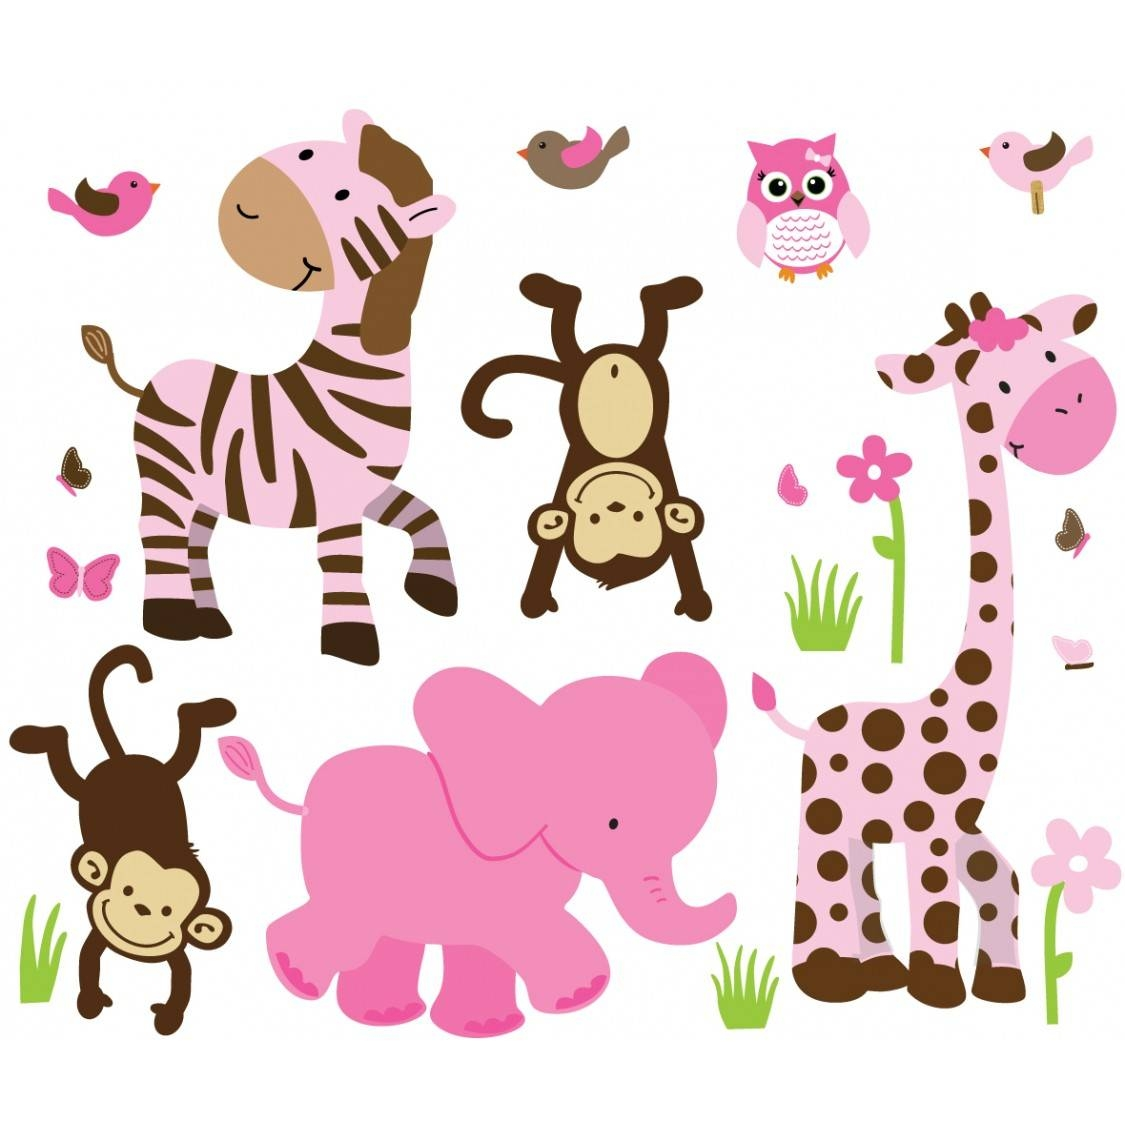 Pink & Green Jungle Nursery Wall Decals For Children Pertaining To Latest Jungle Animal Wall Art (View 17 of 20)